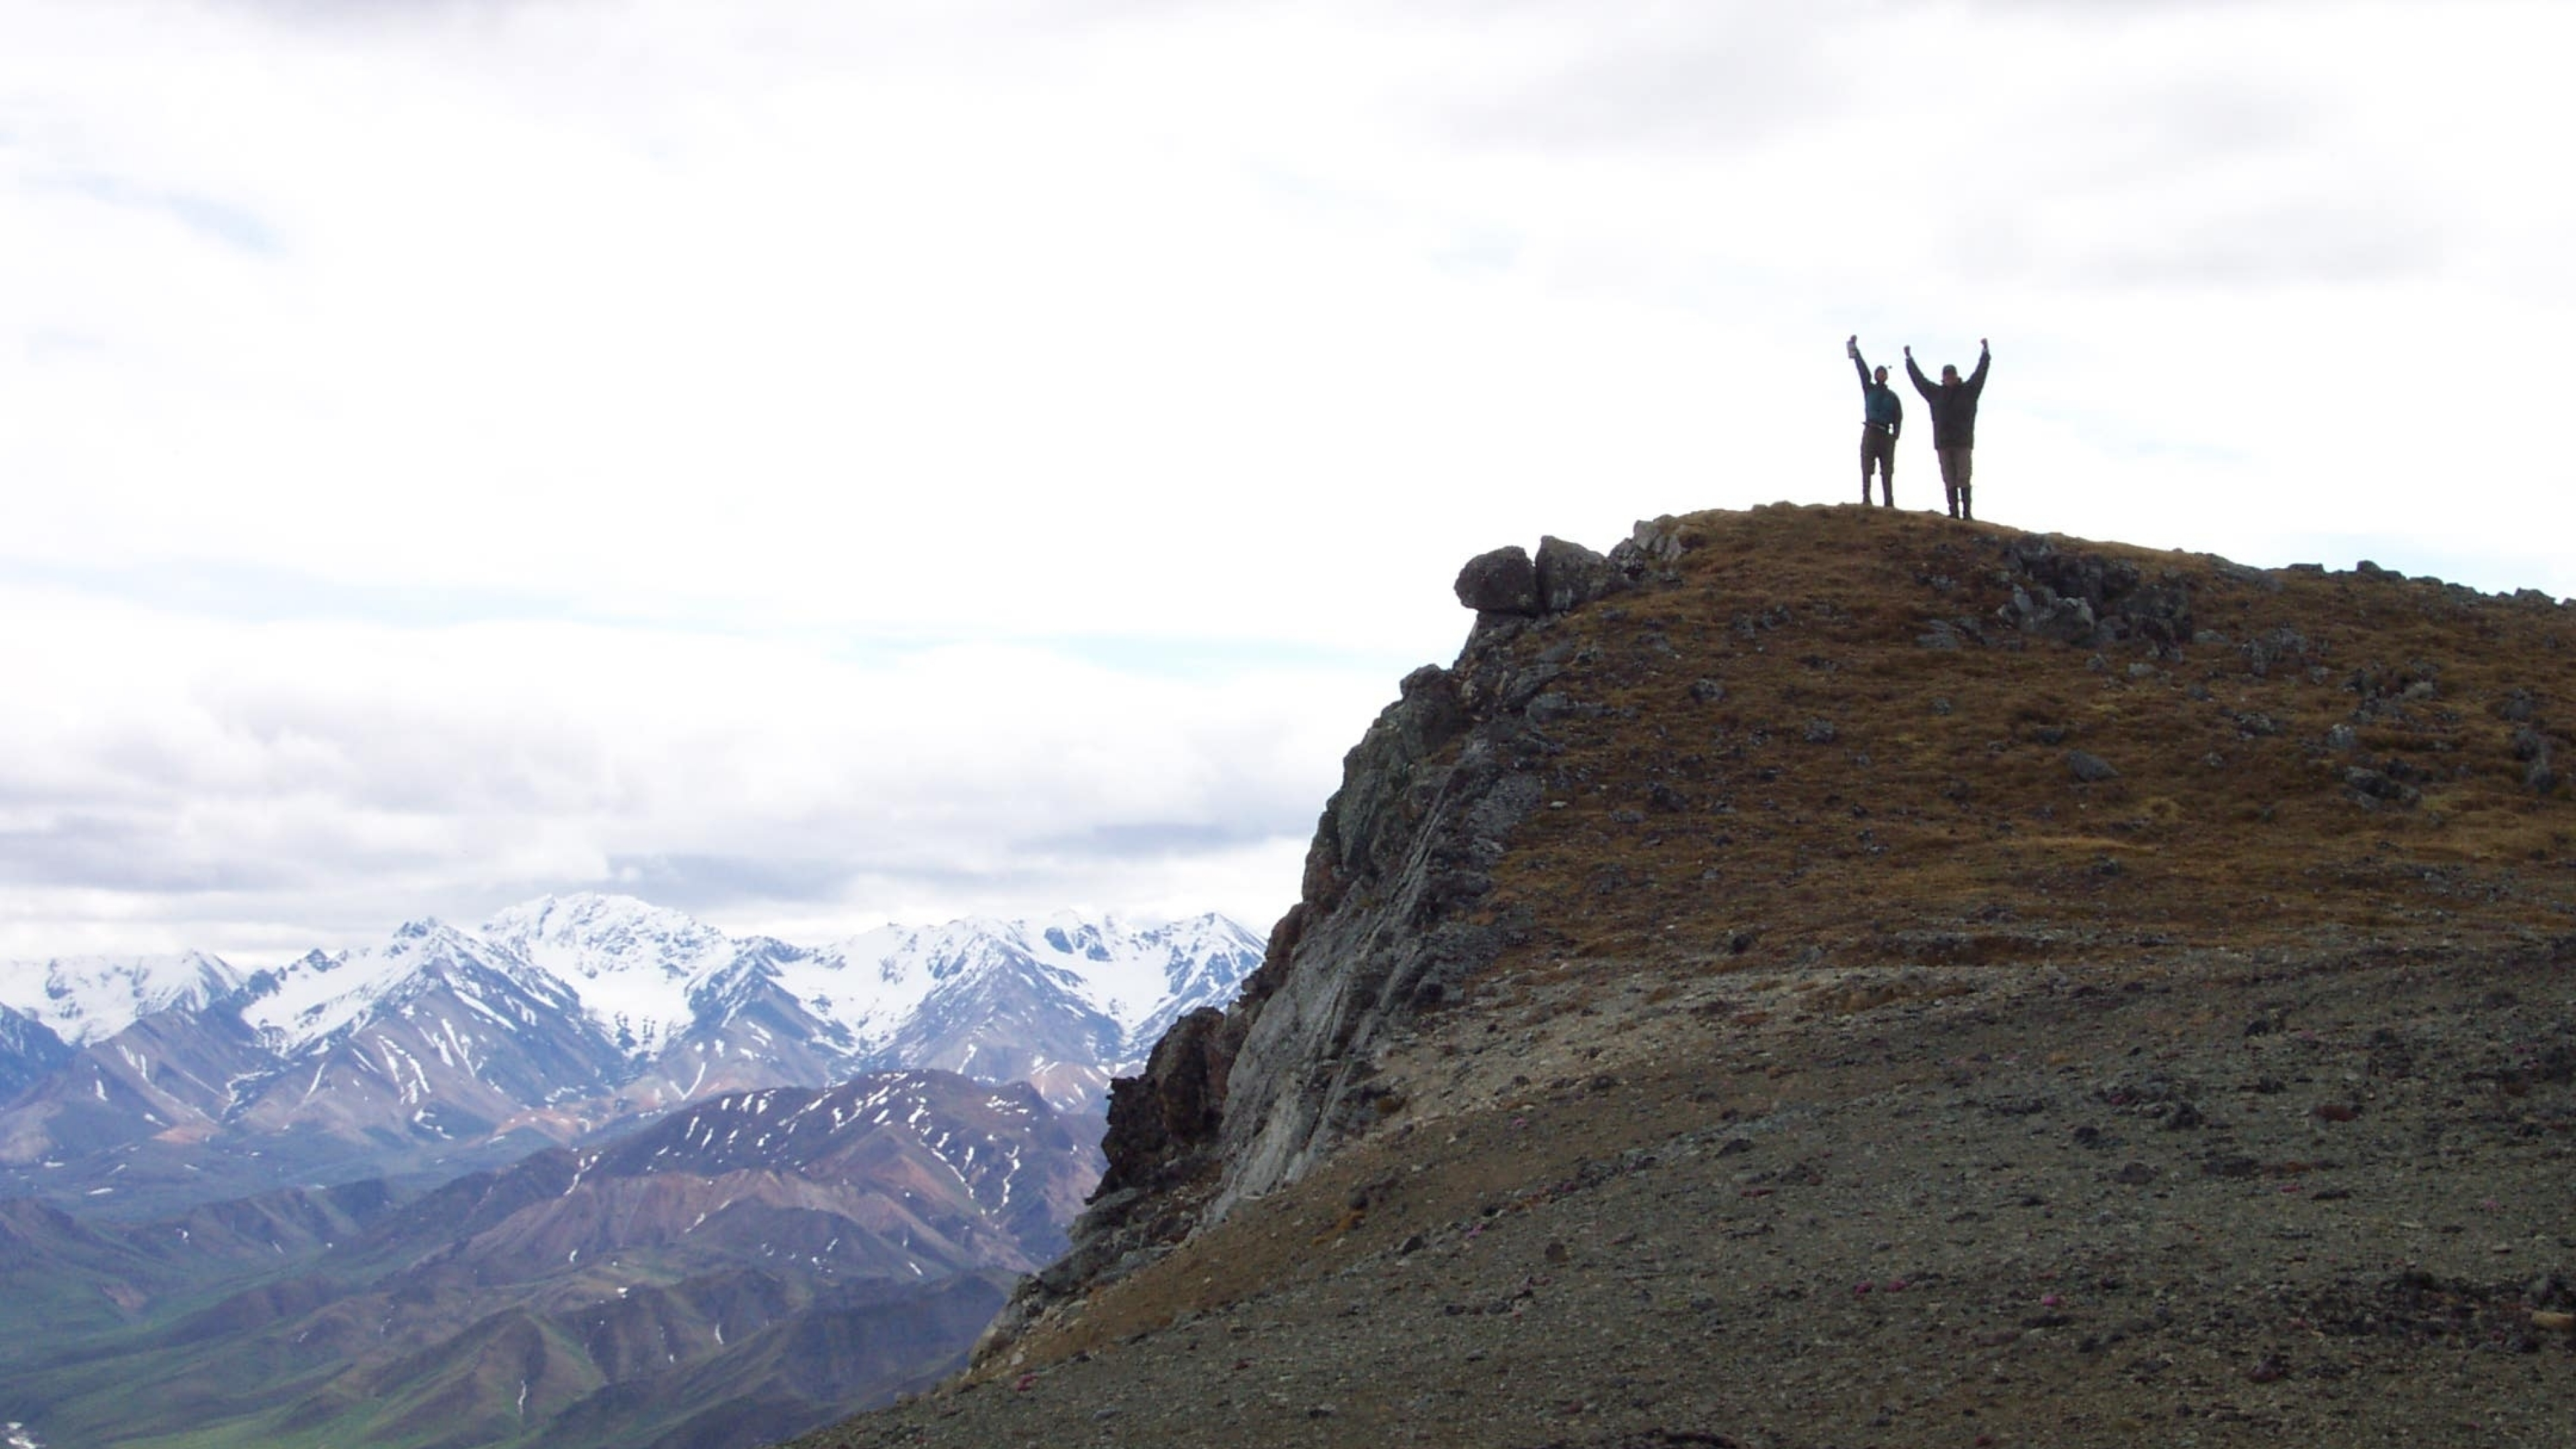 Hikers raise their arms to celebrate hiking up a steep slope